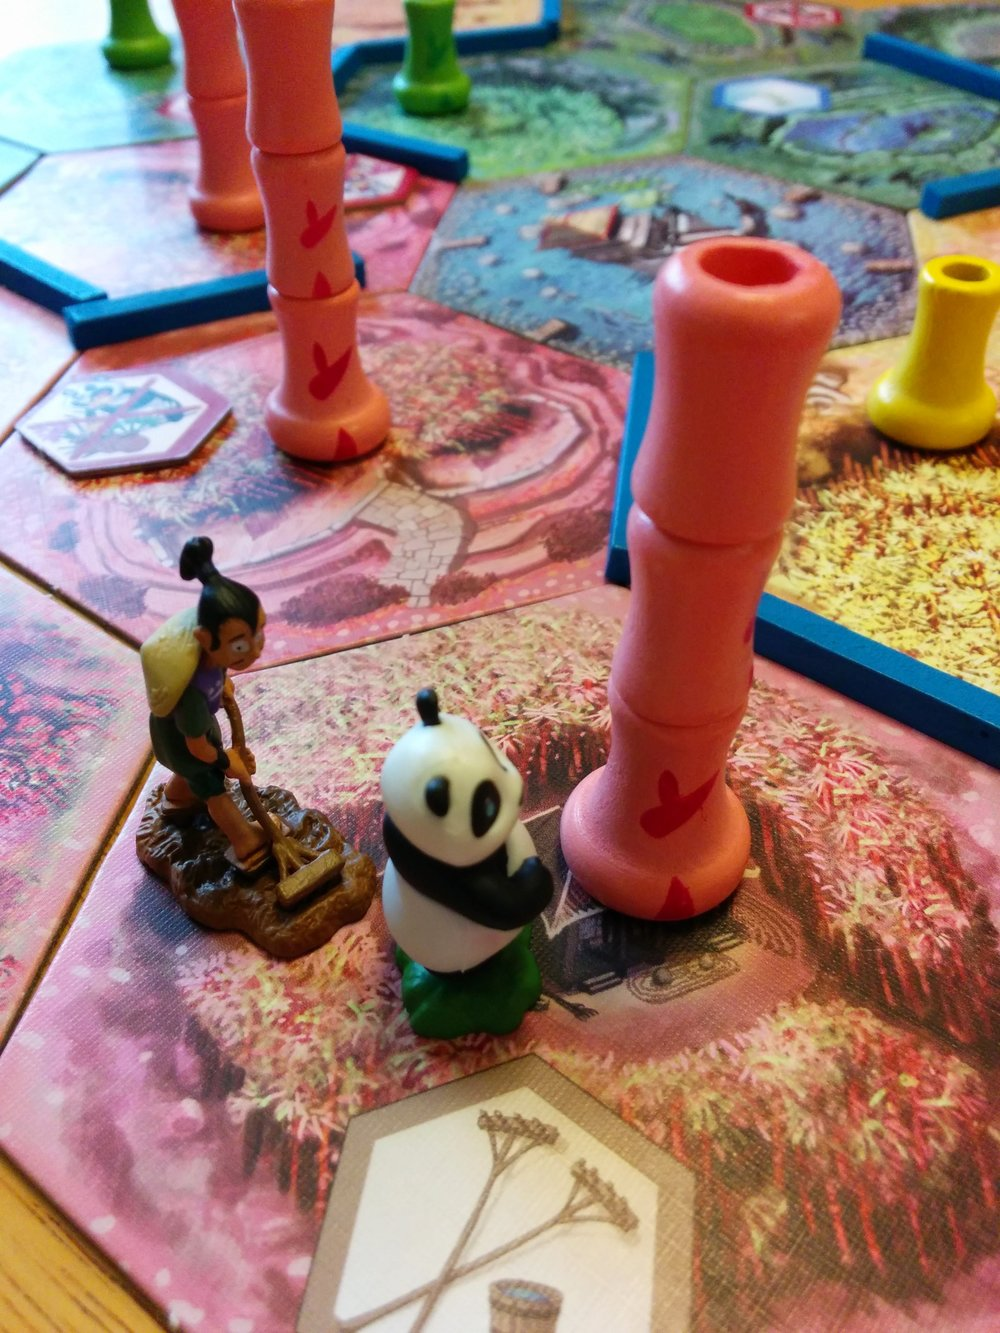 Takenoko  - A delightful gateway game by Antoine Bauza